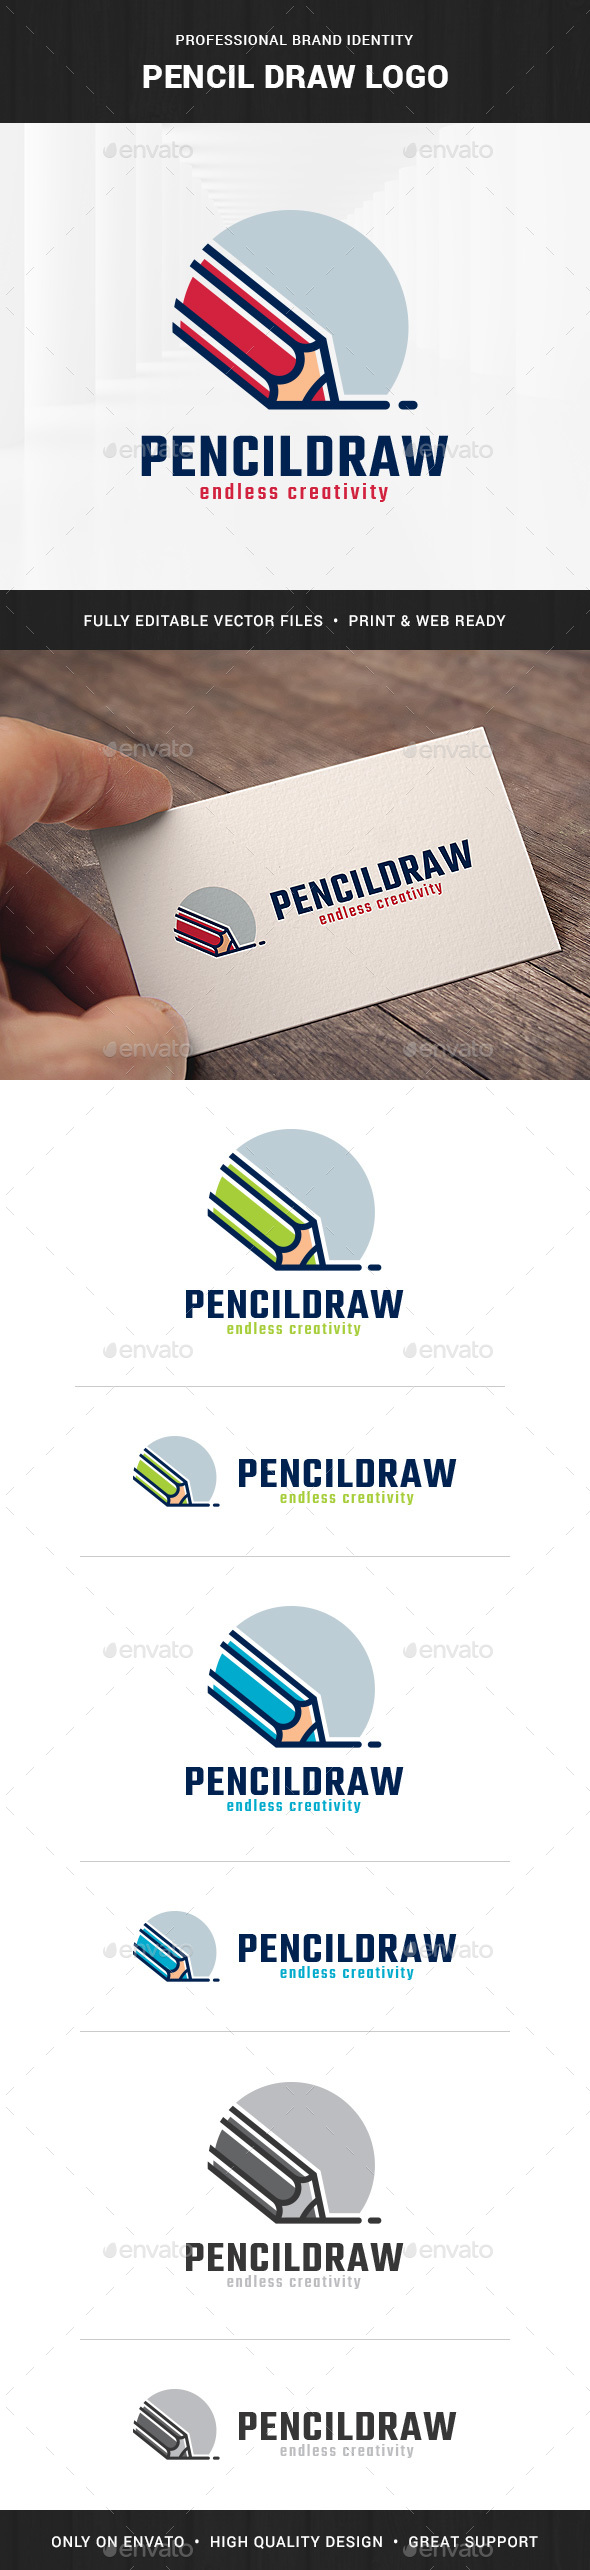 Pencil Draw Logo Template - Objects Logo Templates